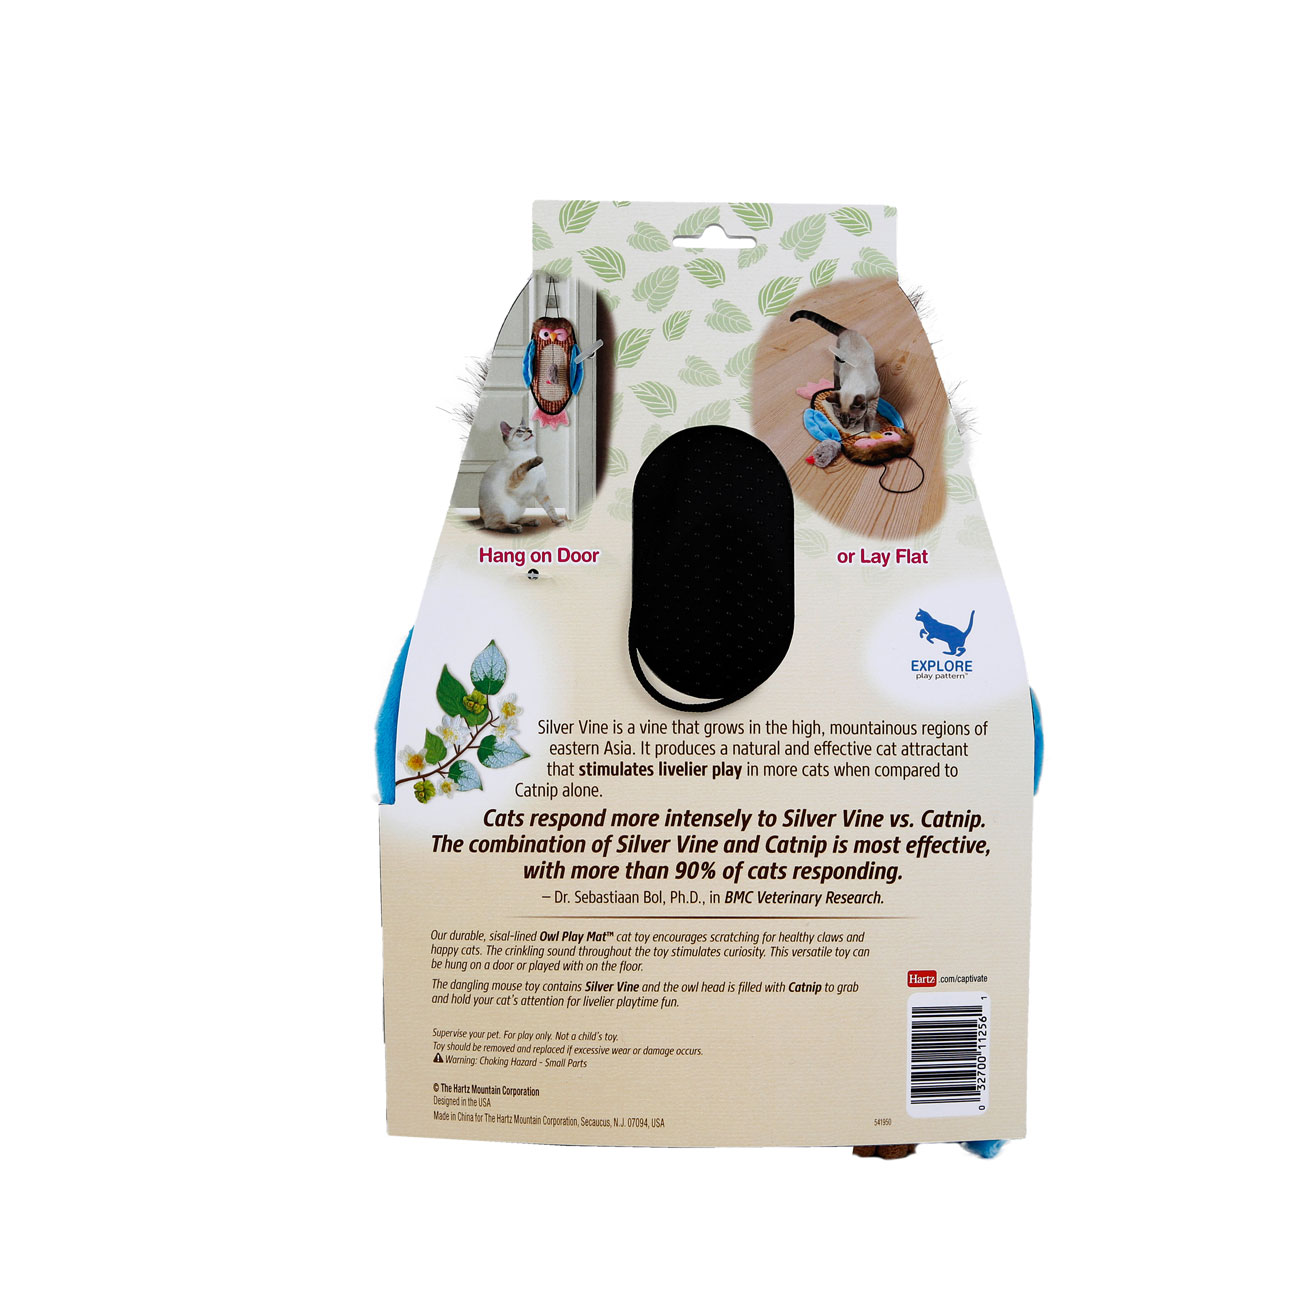 hartz captivate owl play mat with silver vine and catnip. back of package. Hartz SKU#3270011256